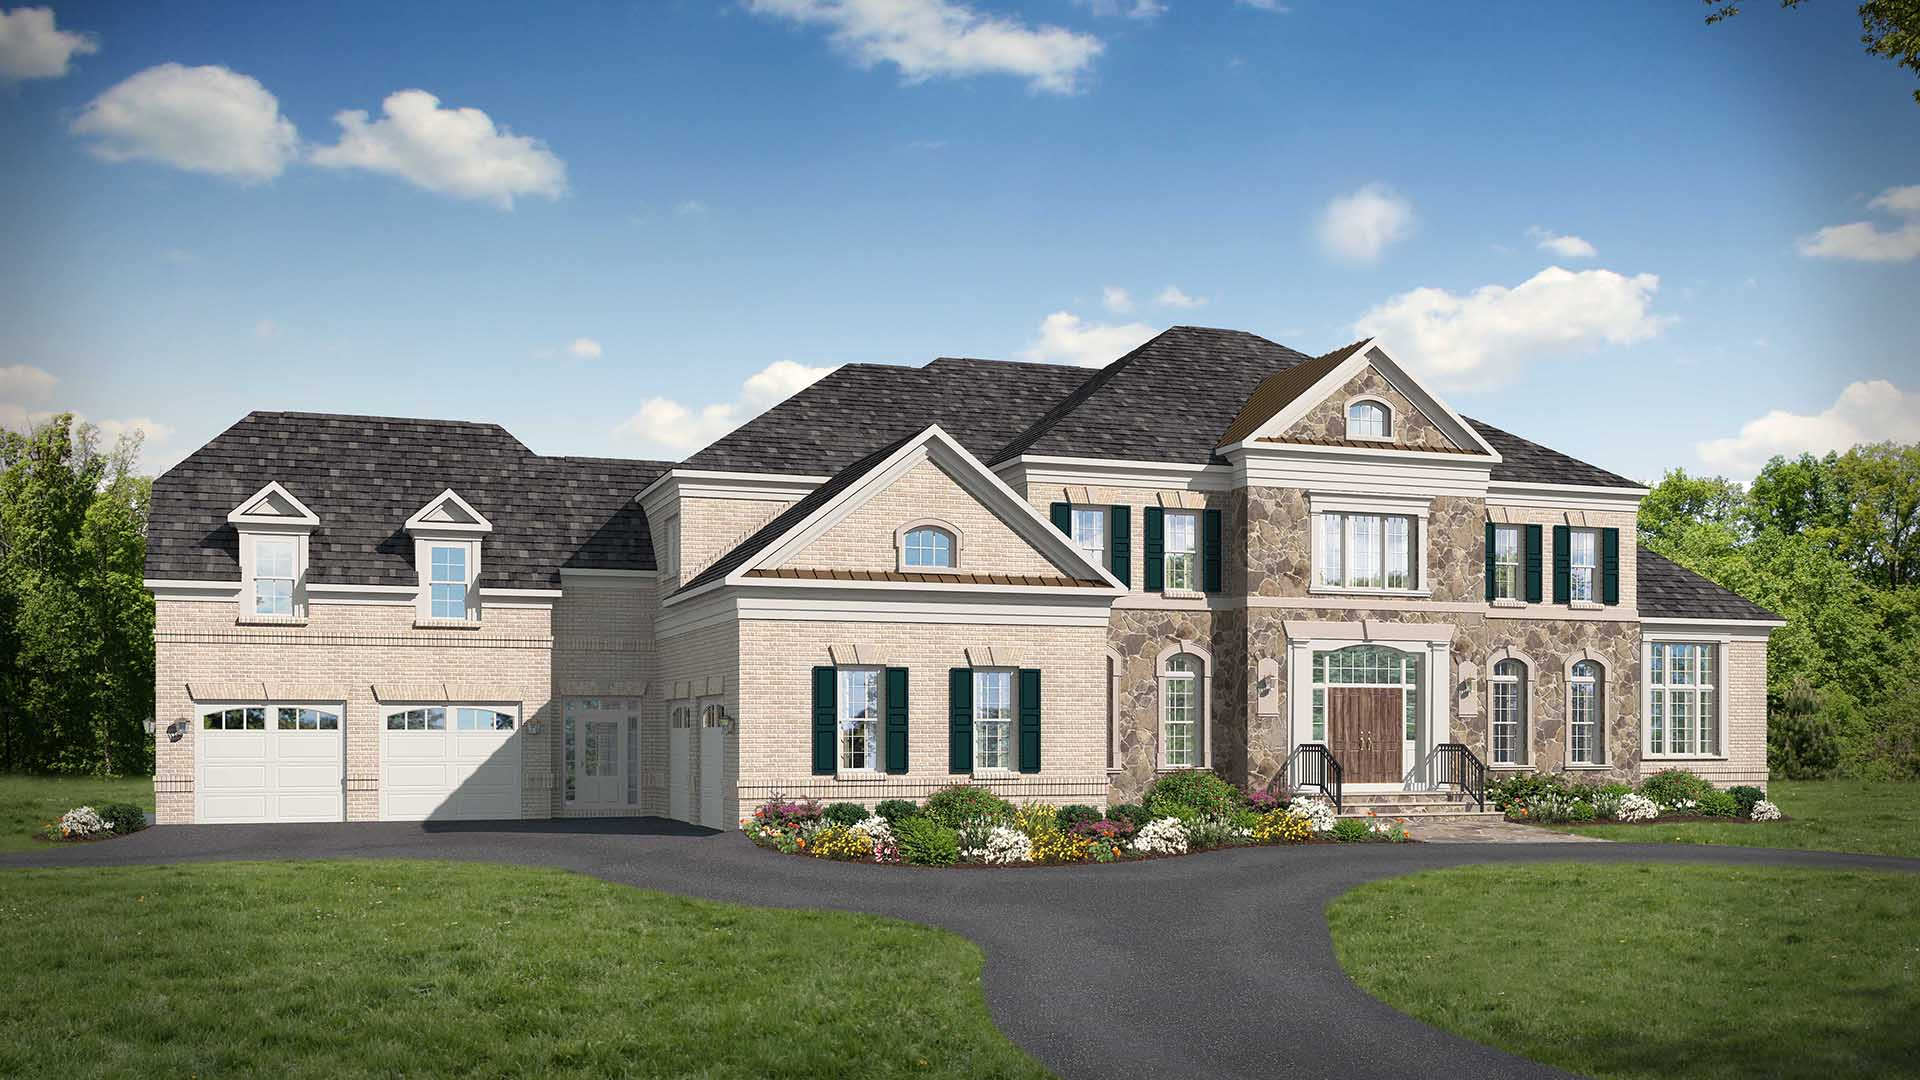 A rendering of the exterior elevation of a Gulick | One home built on Leigh Mill, prior to construction.